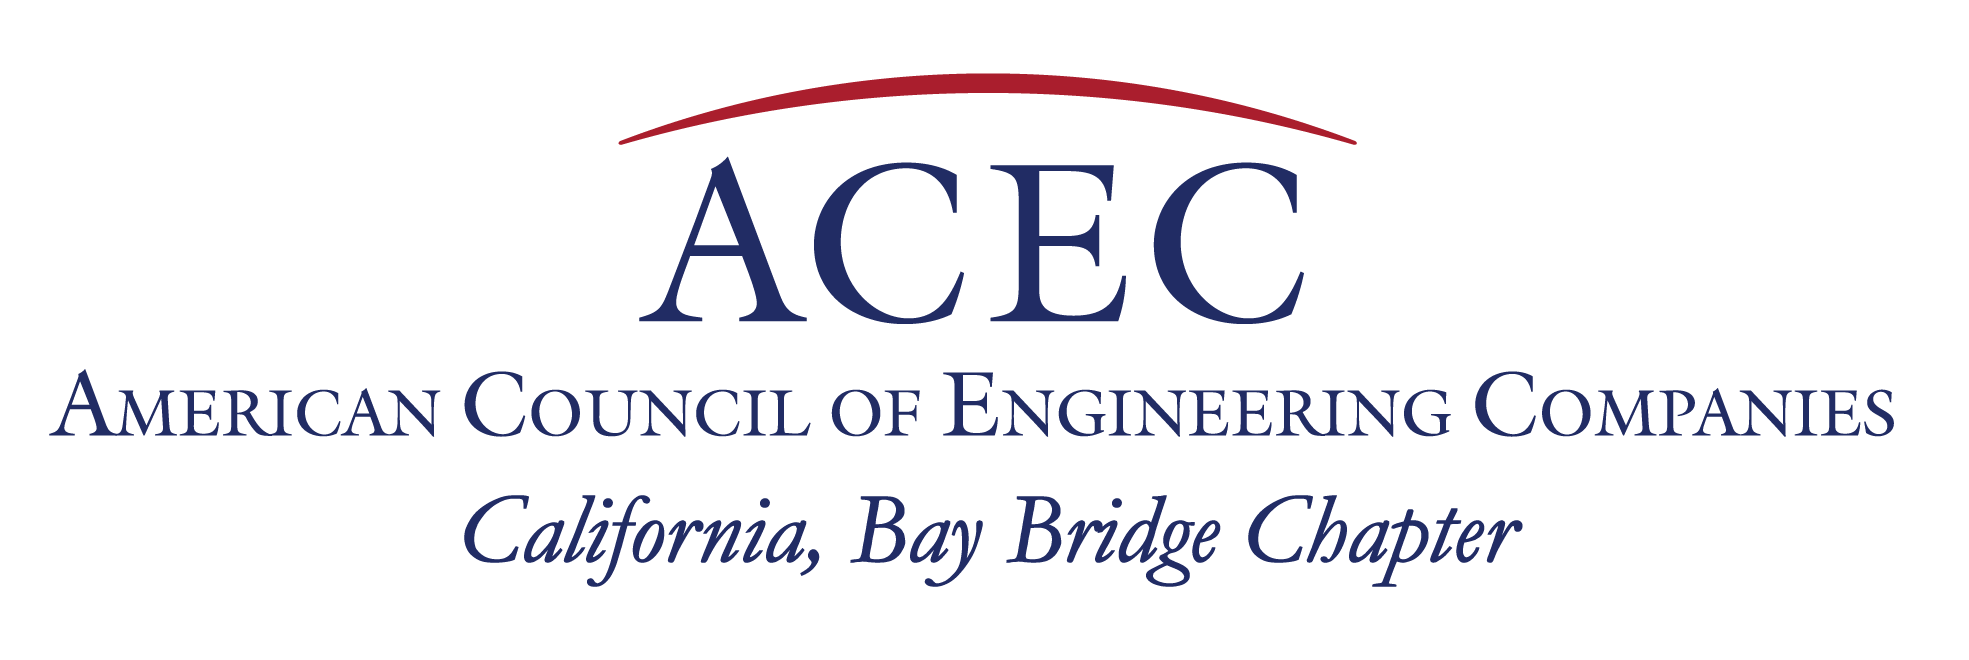 ACEC Bay Bridge Chapter Website